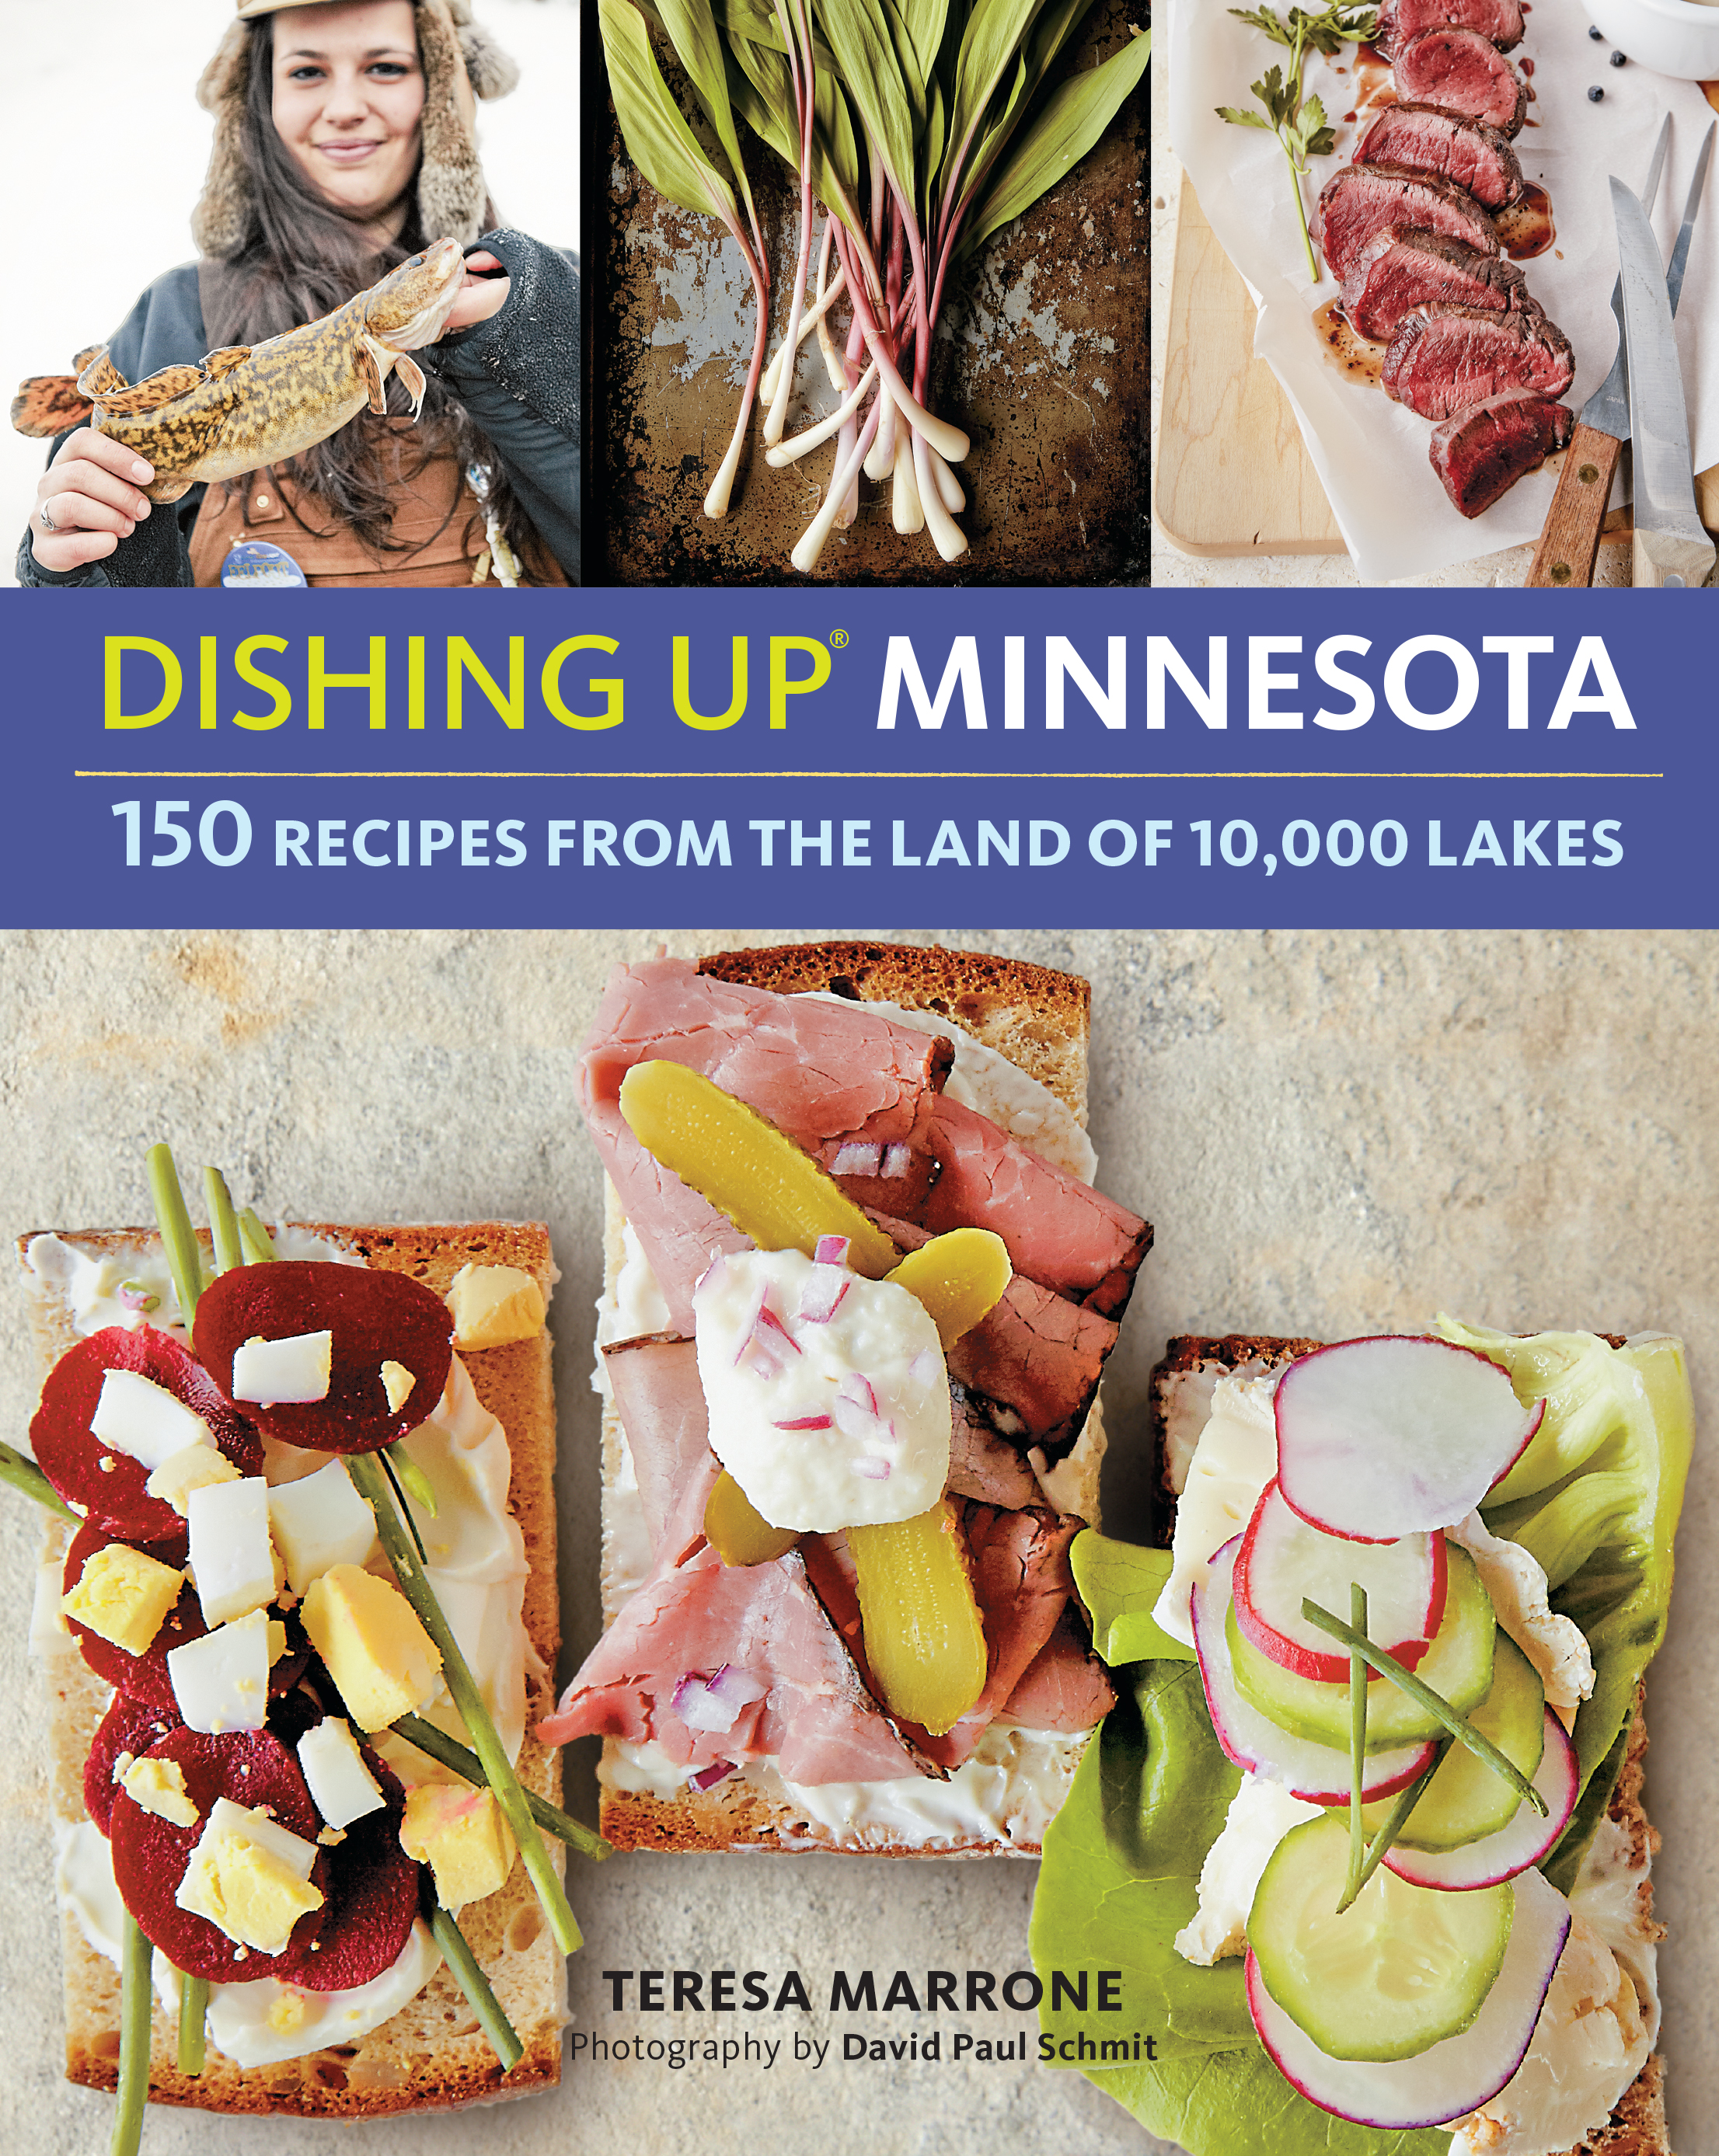 Dishing Up<sup>®</sup> Minnesota 150 Recipes from the Land of 10,000 Lakes - Teresa Marrone